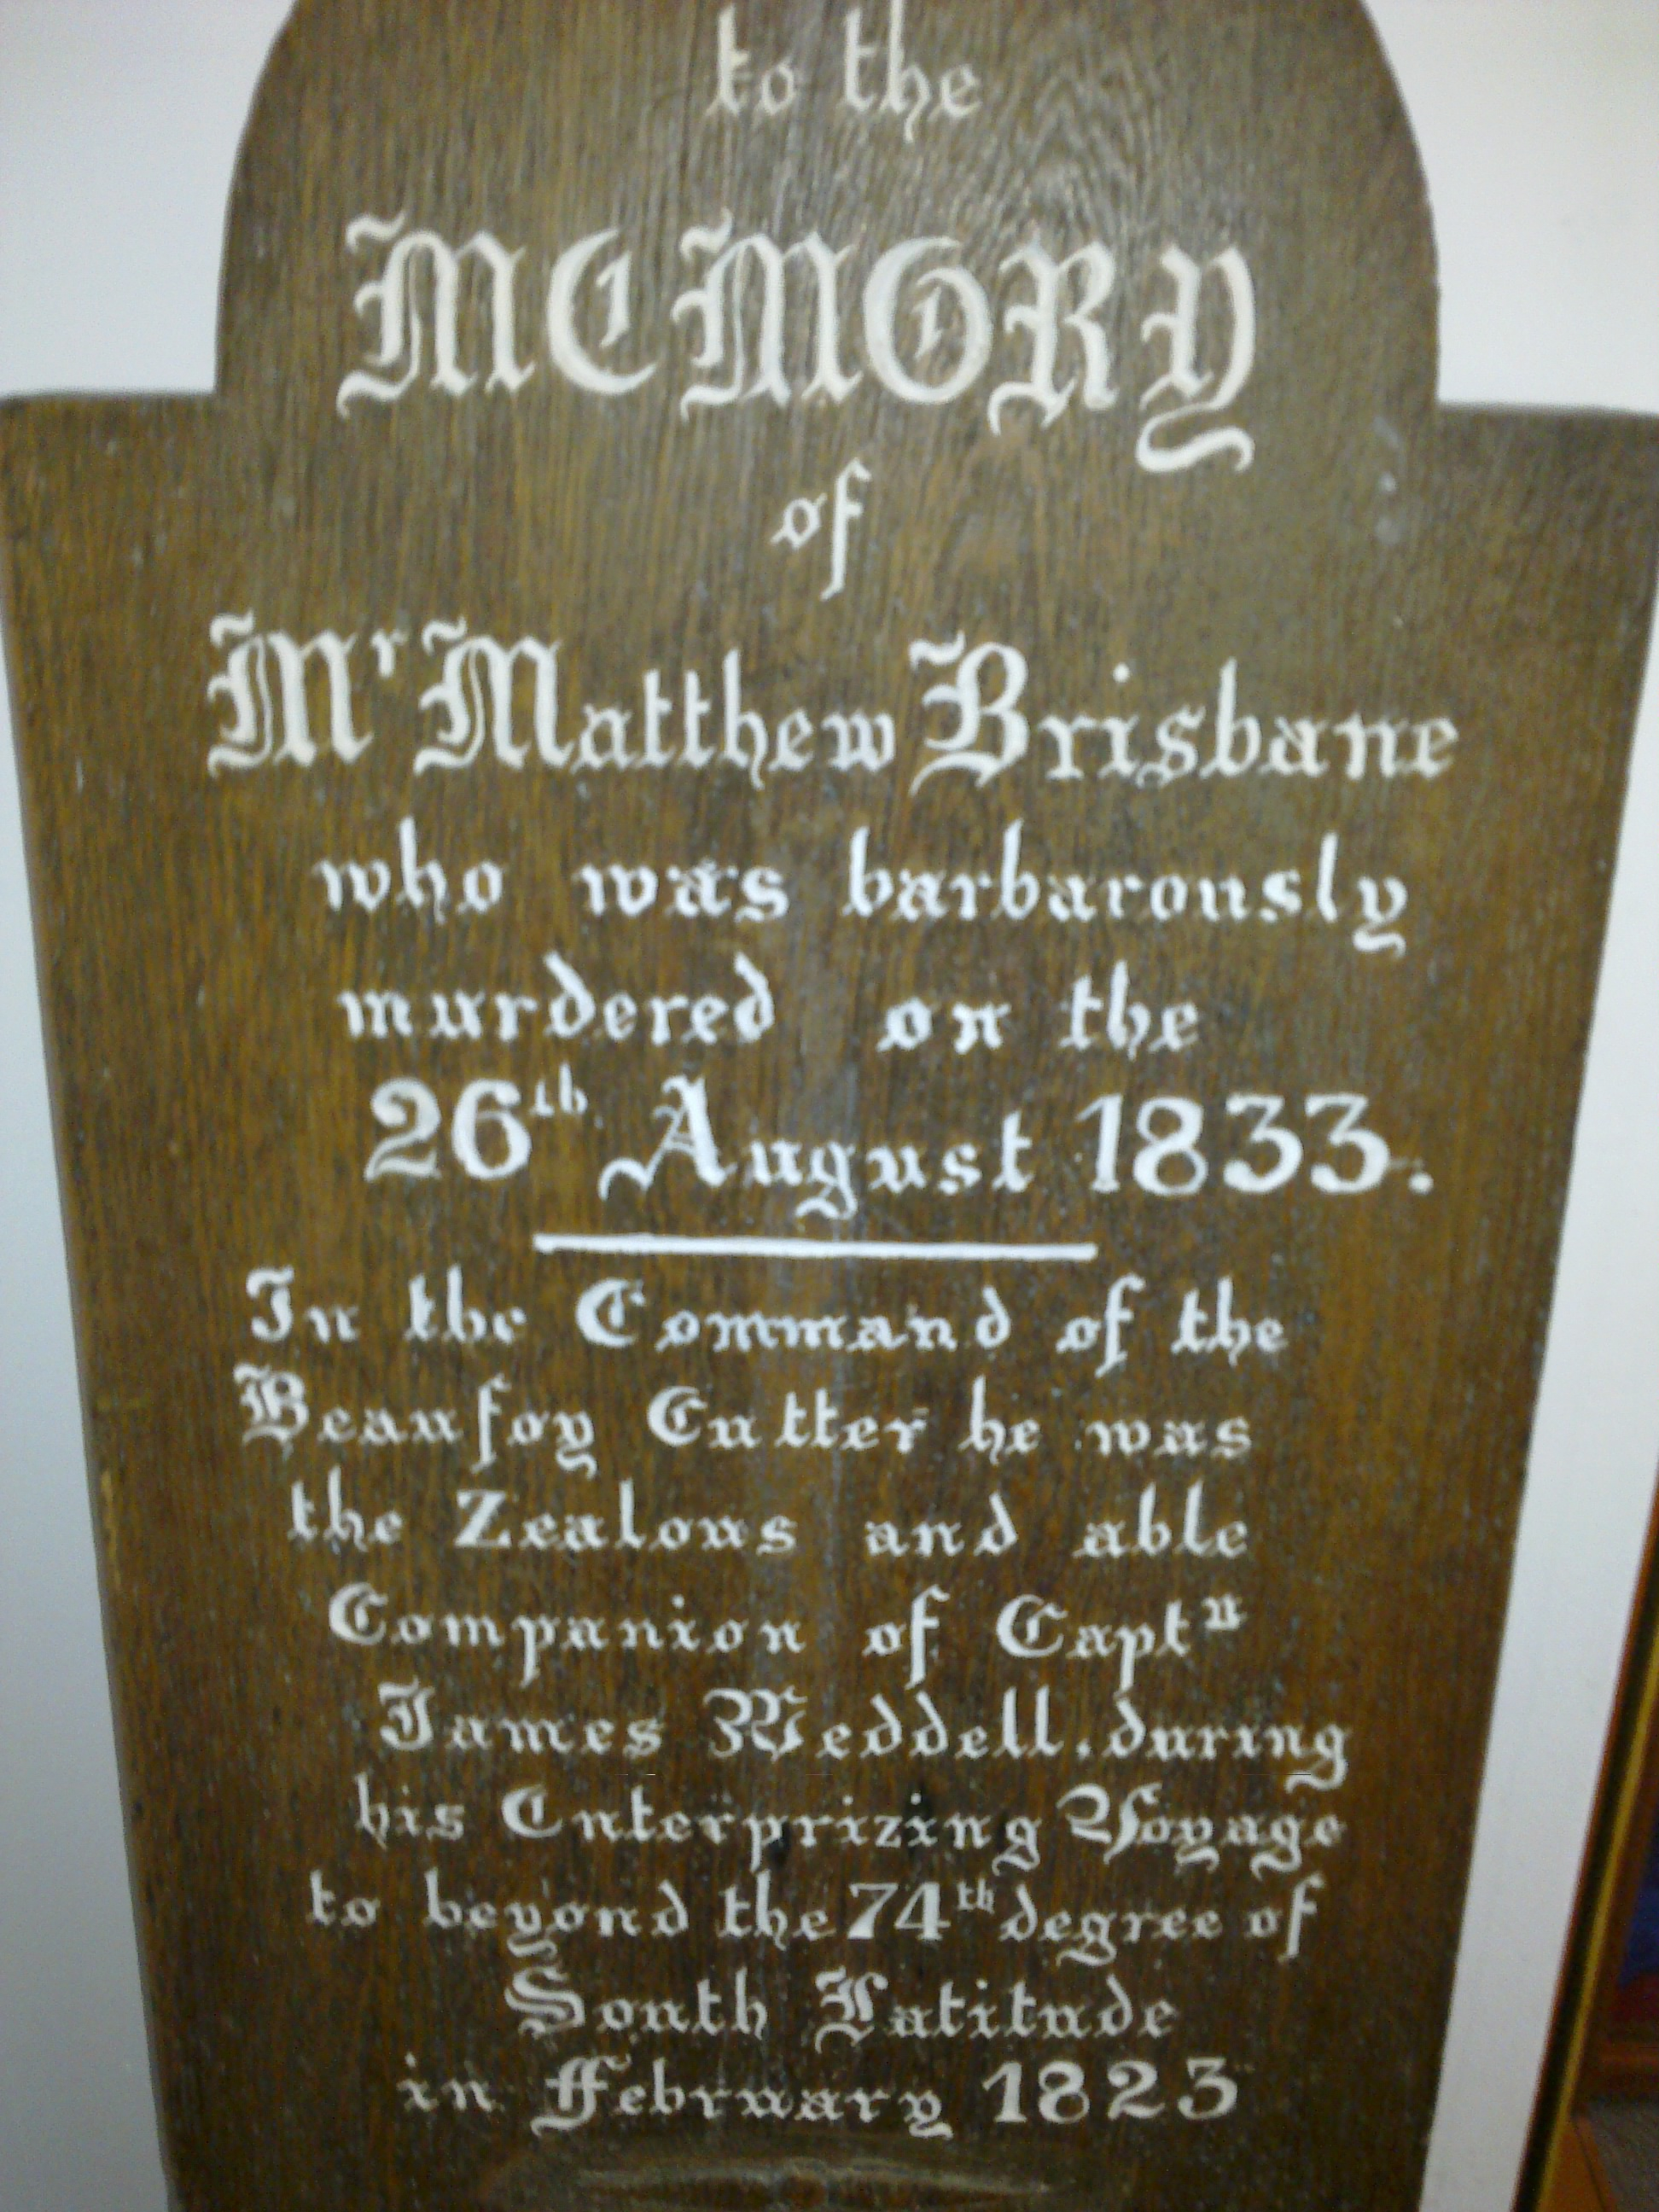 http://upload.wikimedia.org/wikipedia/en/6/6c/Original_Grave_Marker_Matthew_Brisbane_-_Top_Detail.jpg